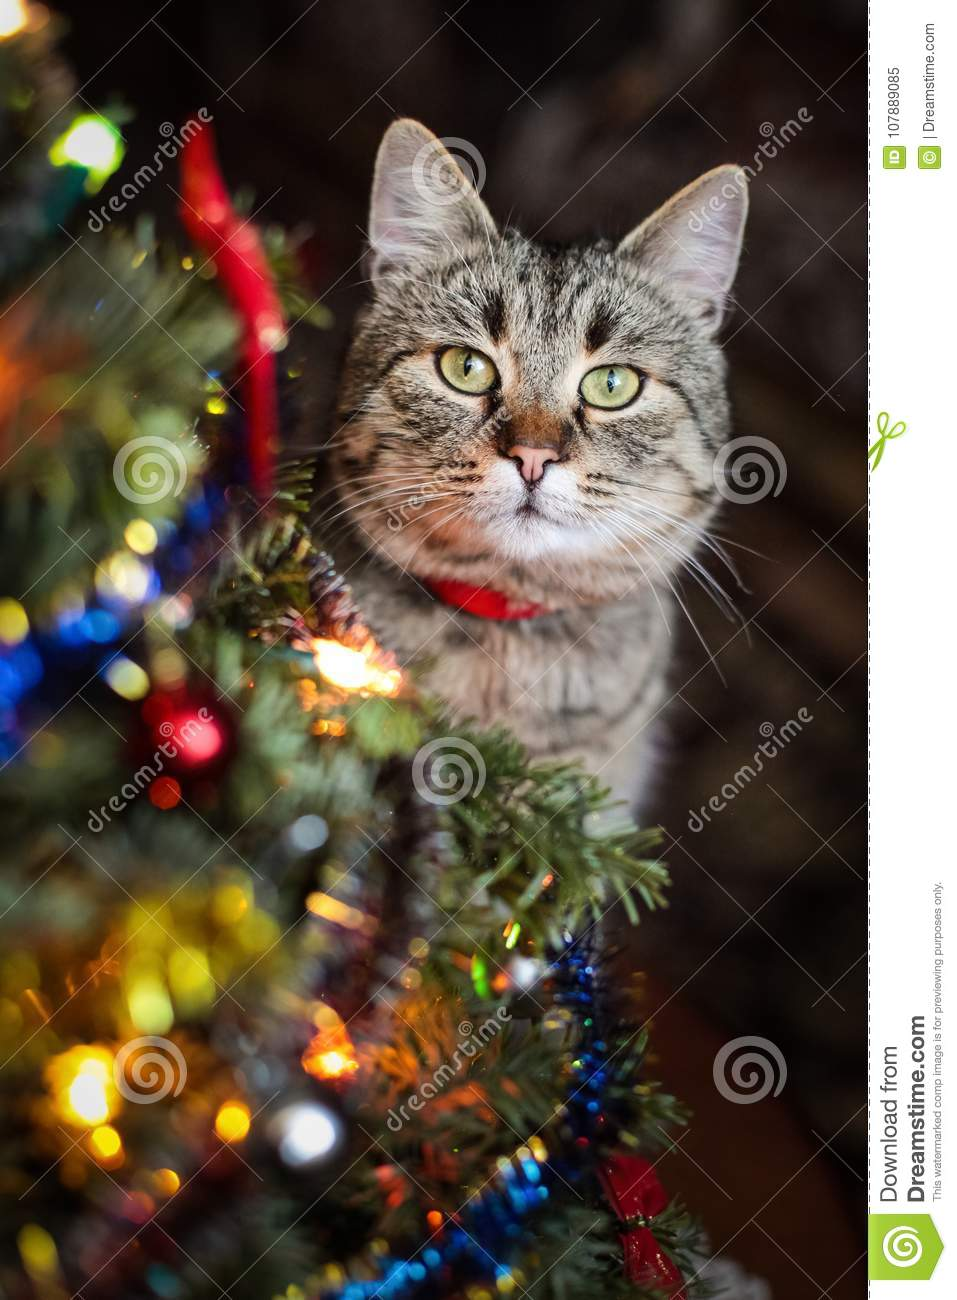 download cat with christmas presents and decorations for a christmas tree stock image image of - Cat Christmas Decorations